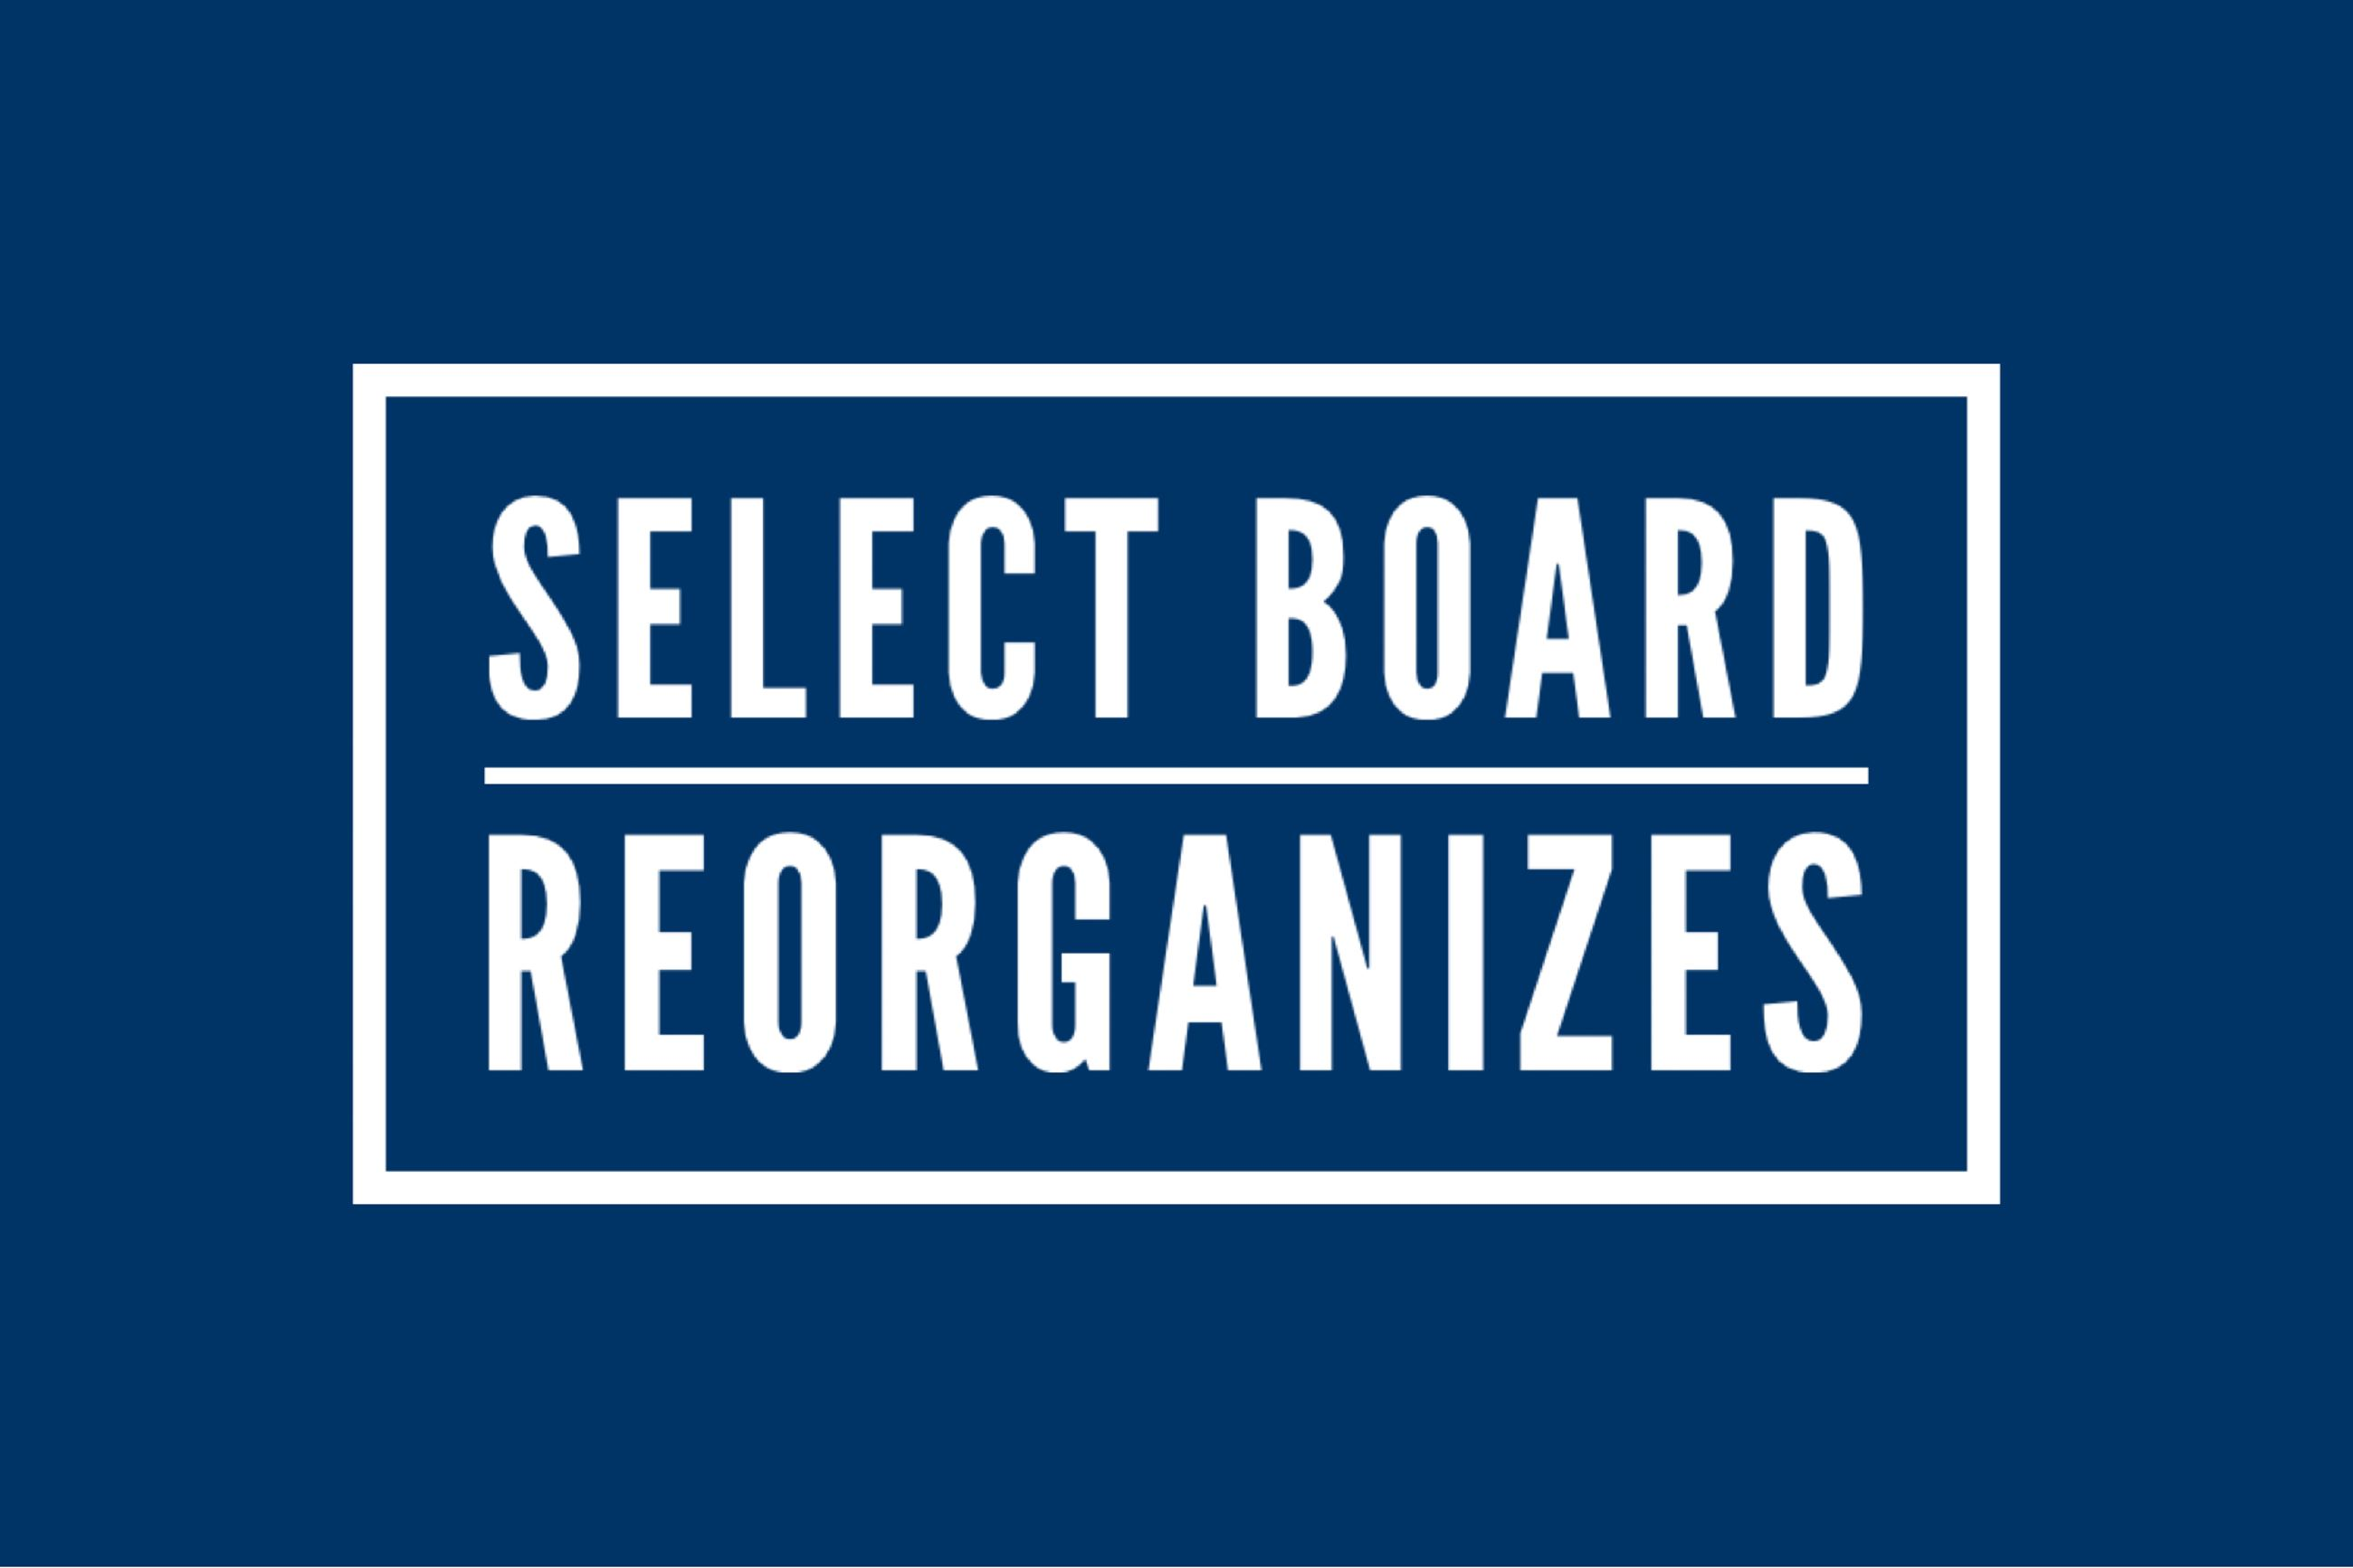 Select Board Reorganizes